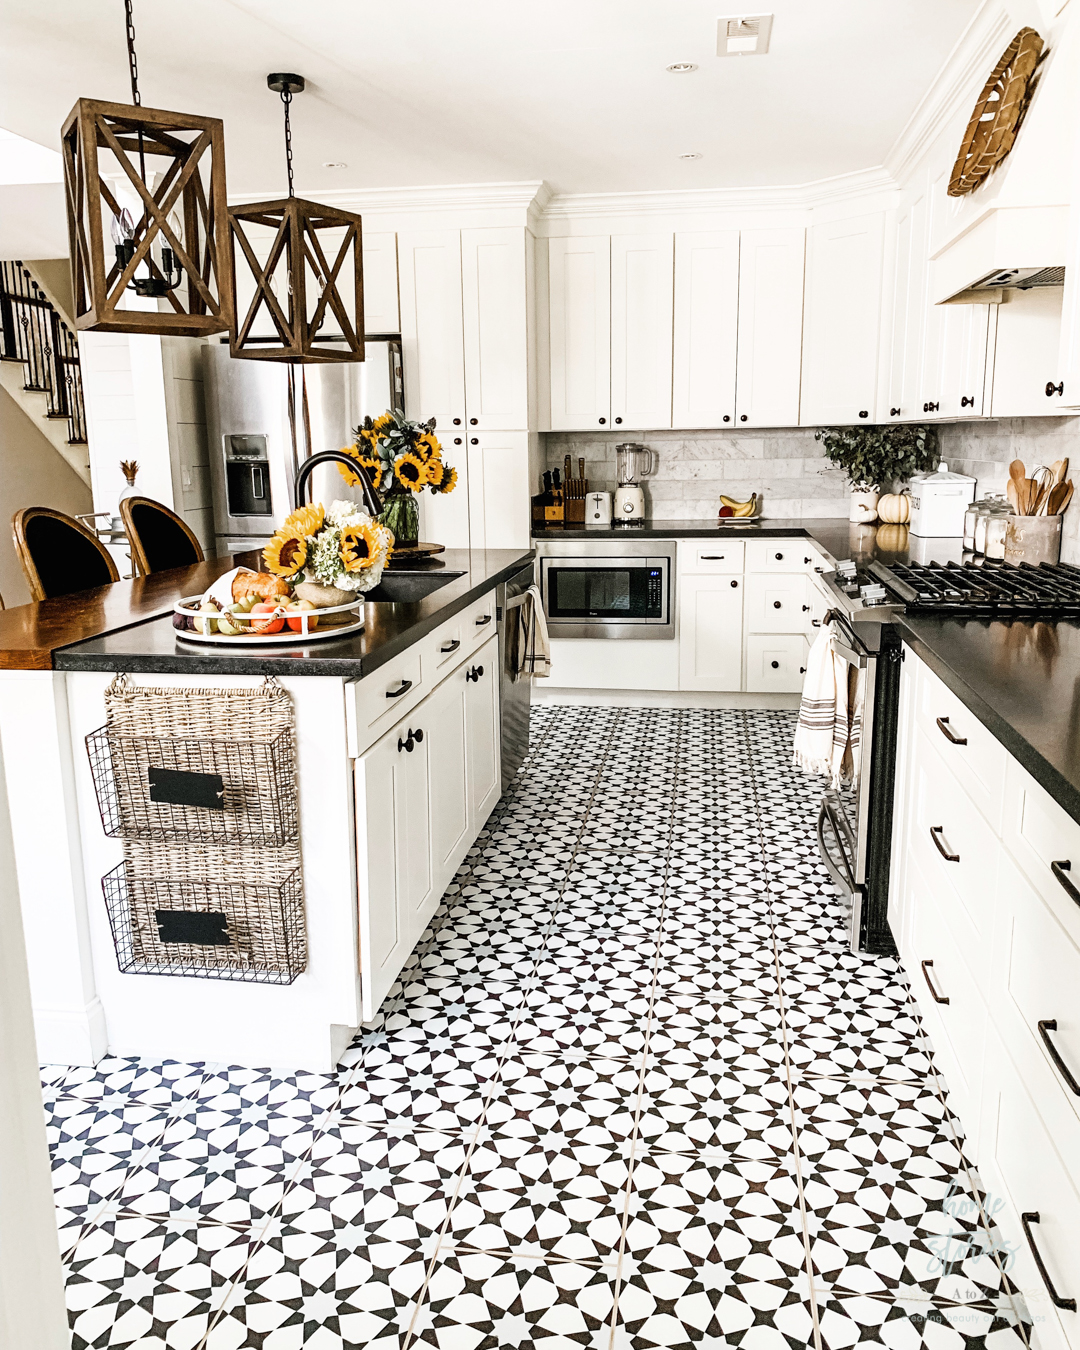 How to Update Tile Without Removing It Peel and Stick Floor Tiles